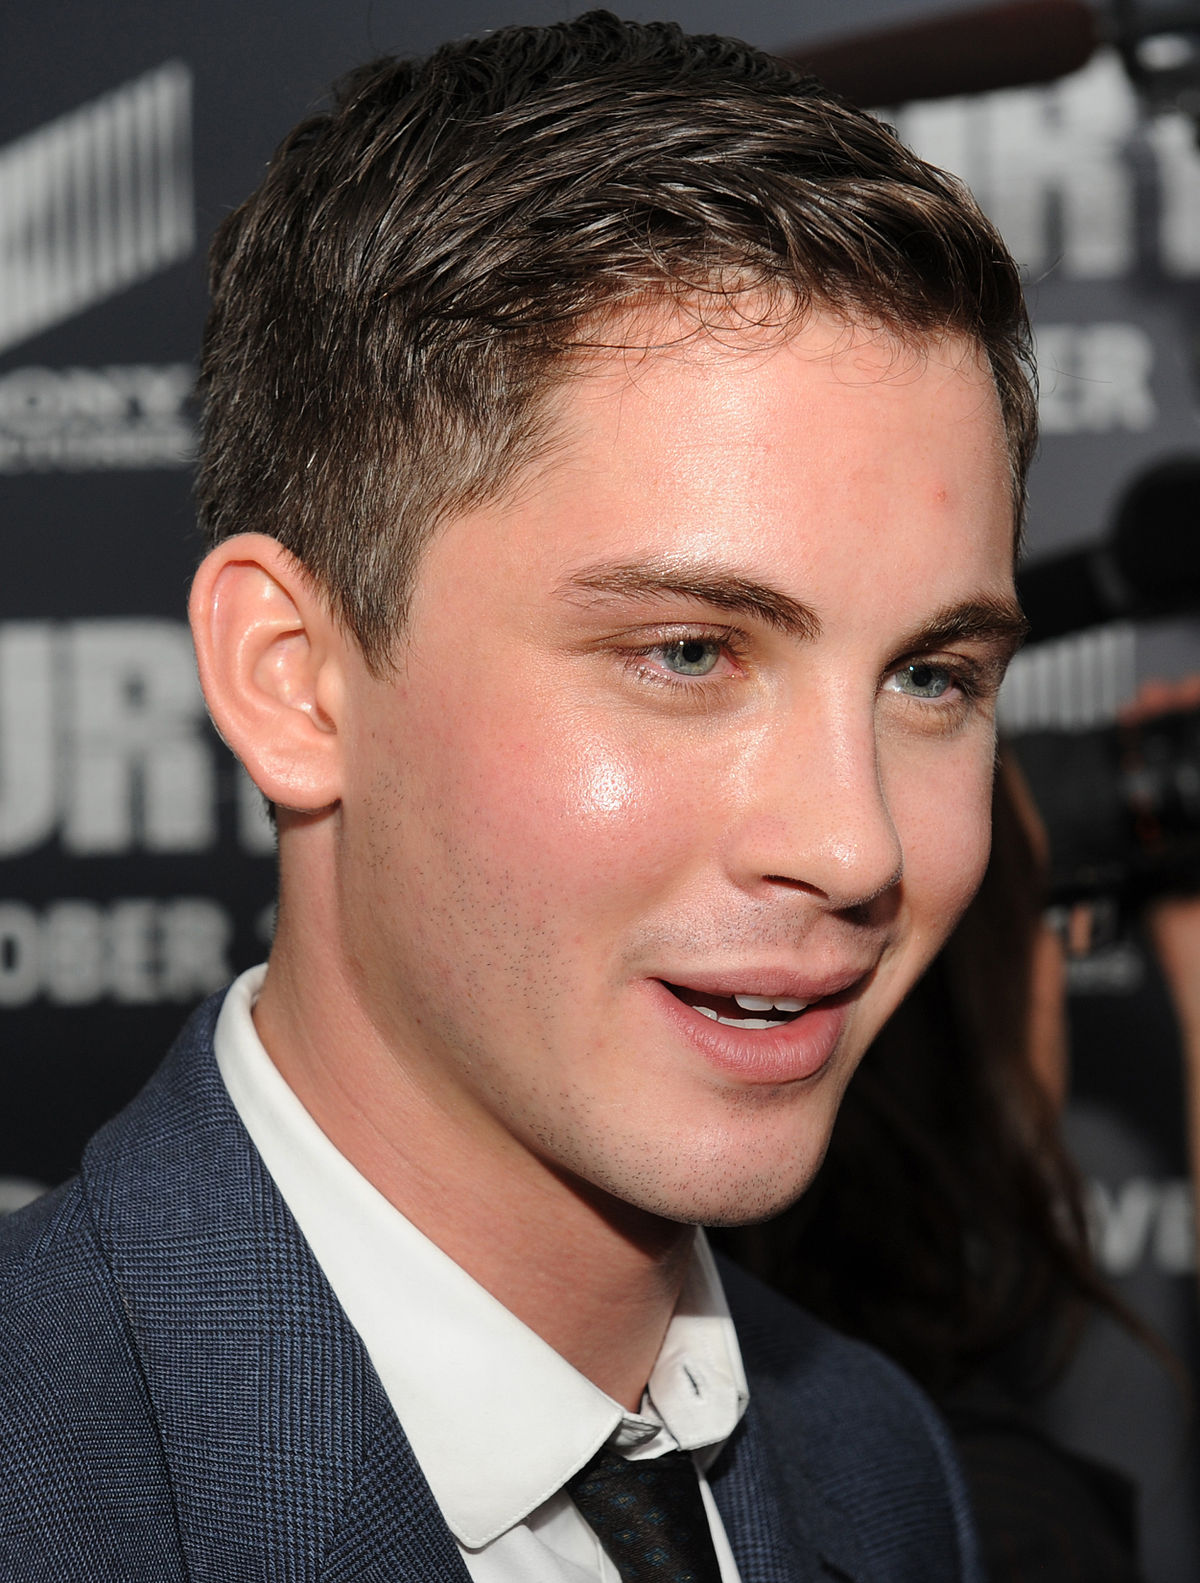 logan lerman movieslogan lerman instagram, logan lerman gif, logan lerman 2017, logan lerman tumblr, logan lerman vk, logan lerman photoshoot, logan lerman movies, logan lerman twitter, logan lerman gif hunt, logan lerman wiki, logan lerman fury, logan lerman wikipedia, logan lerman imdb, logan lerman insta, logan lerman tumblr gif, logan lerman site, logan lerman listal, logan lerman film, logan lerman foto, logan lerman kinopoisk